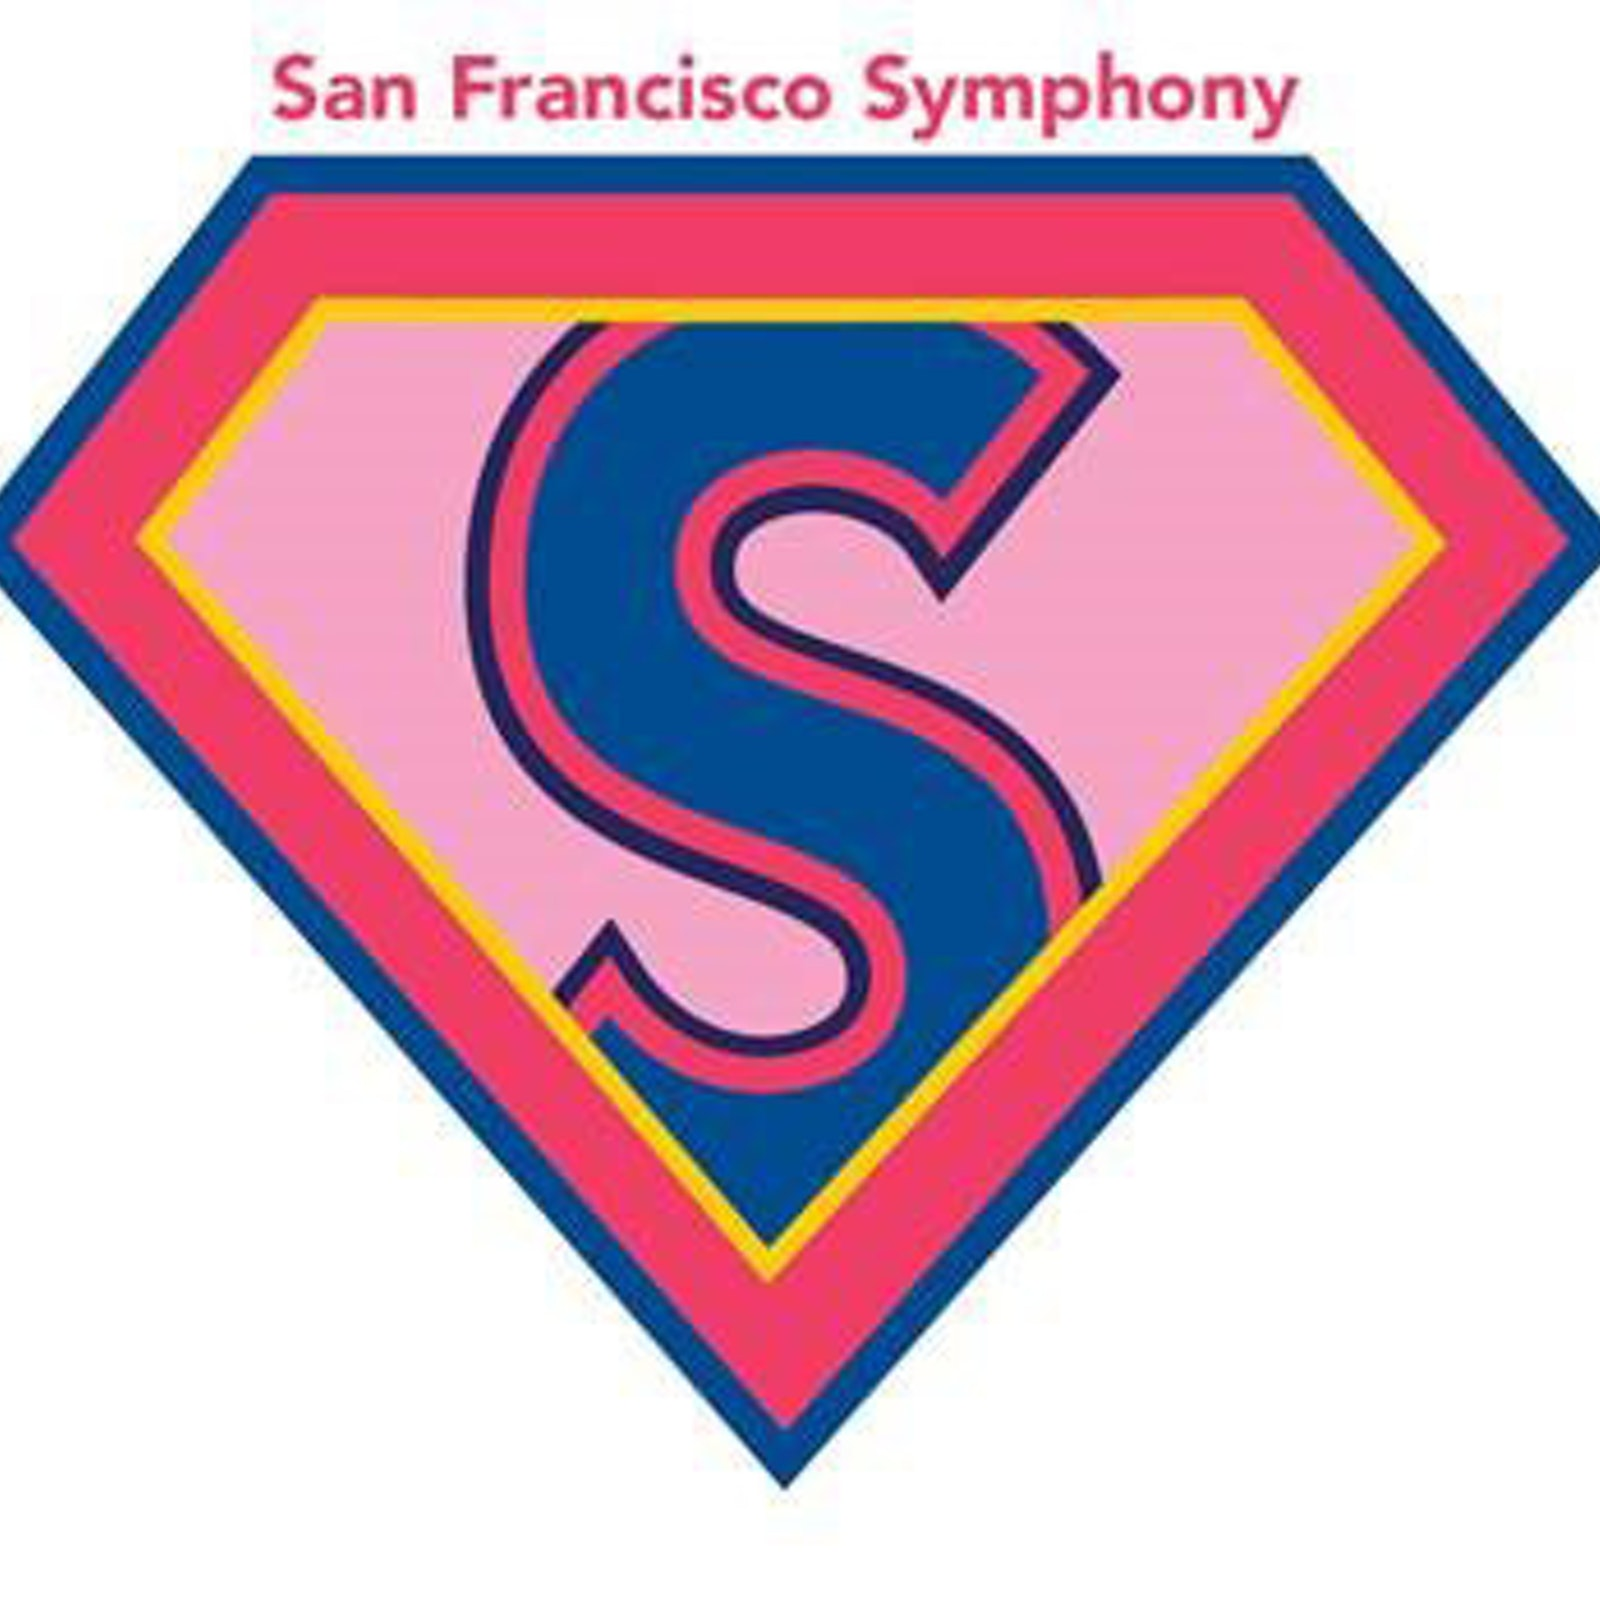 S for Symphony